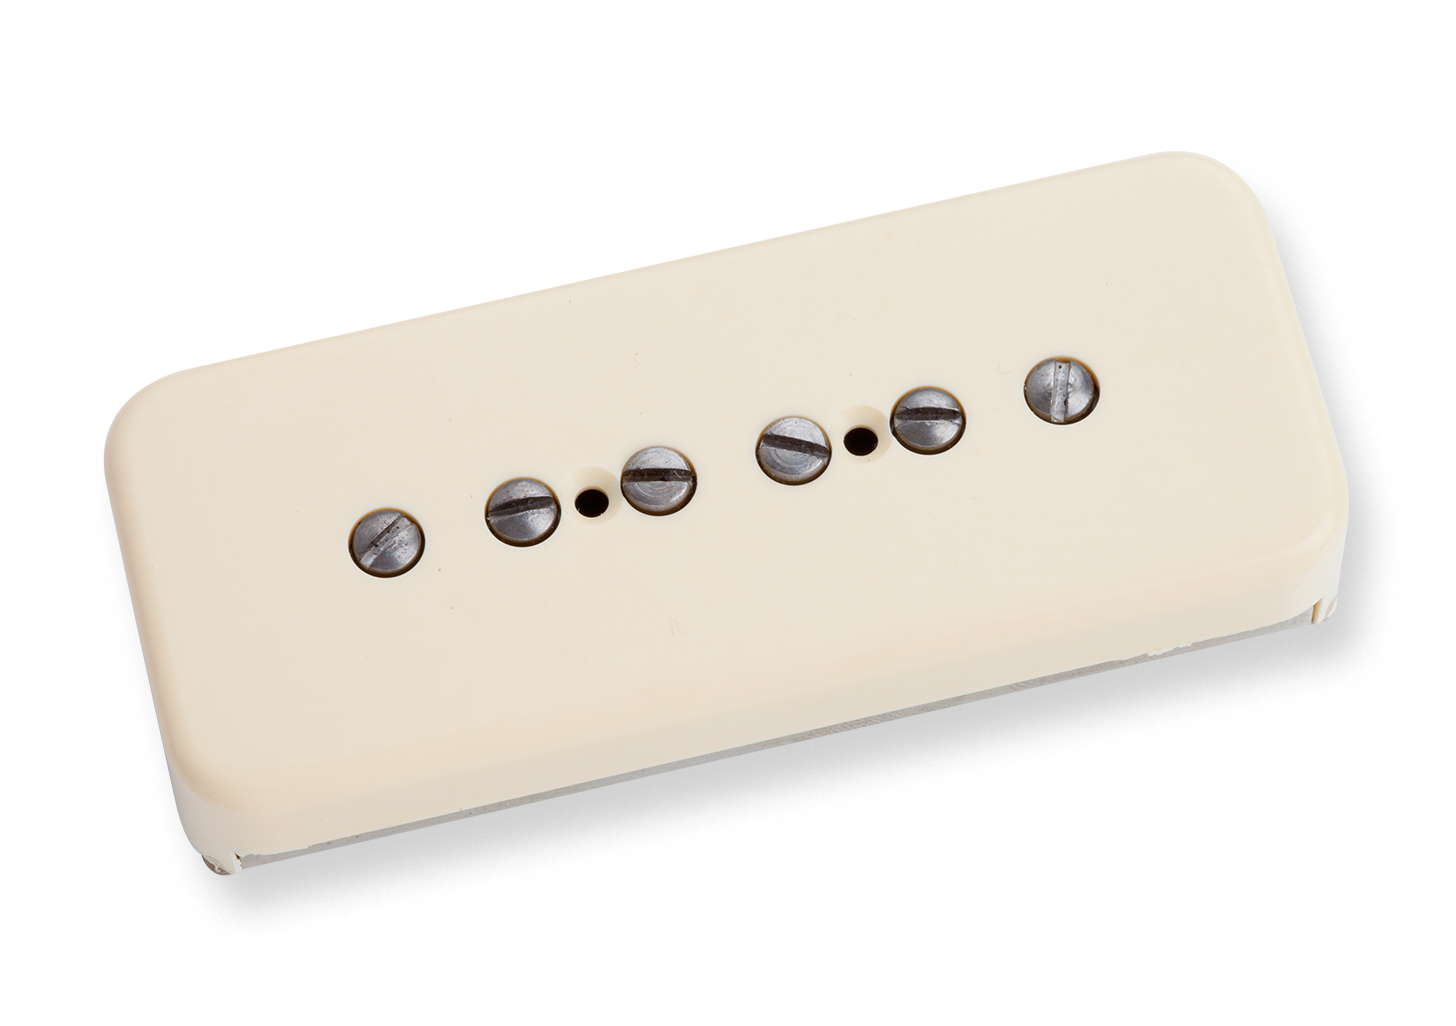 Seymour Duncan Antiquity P90 - Bridge Cream